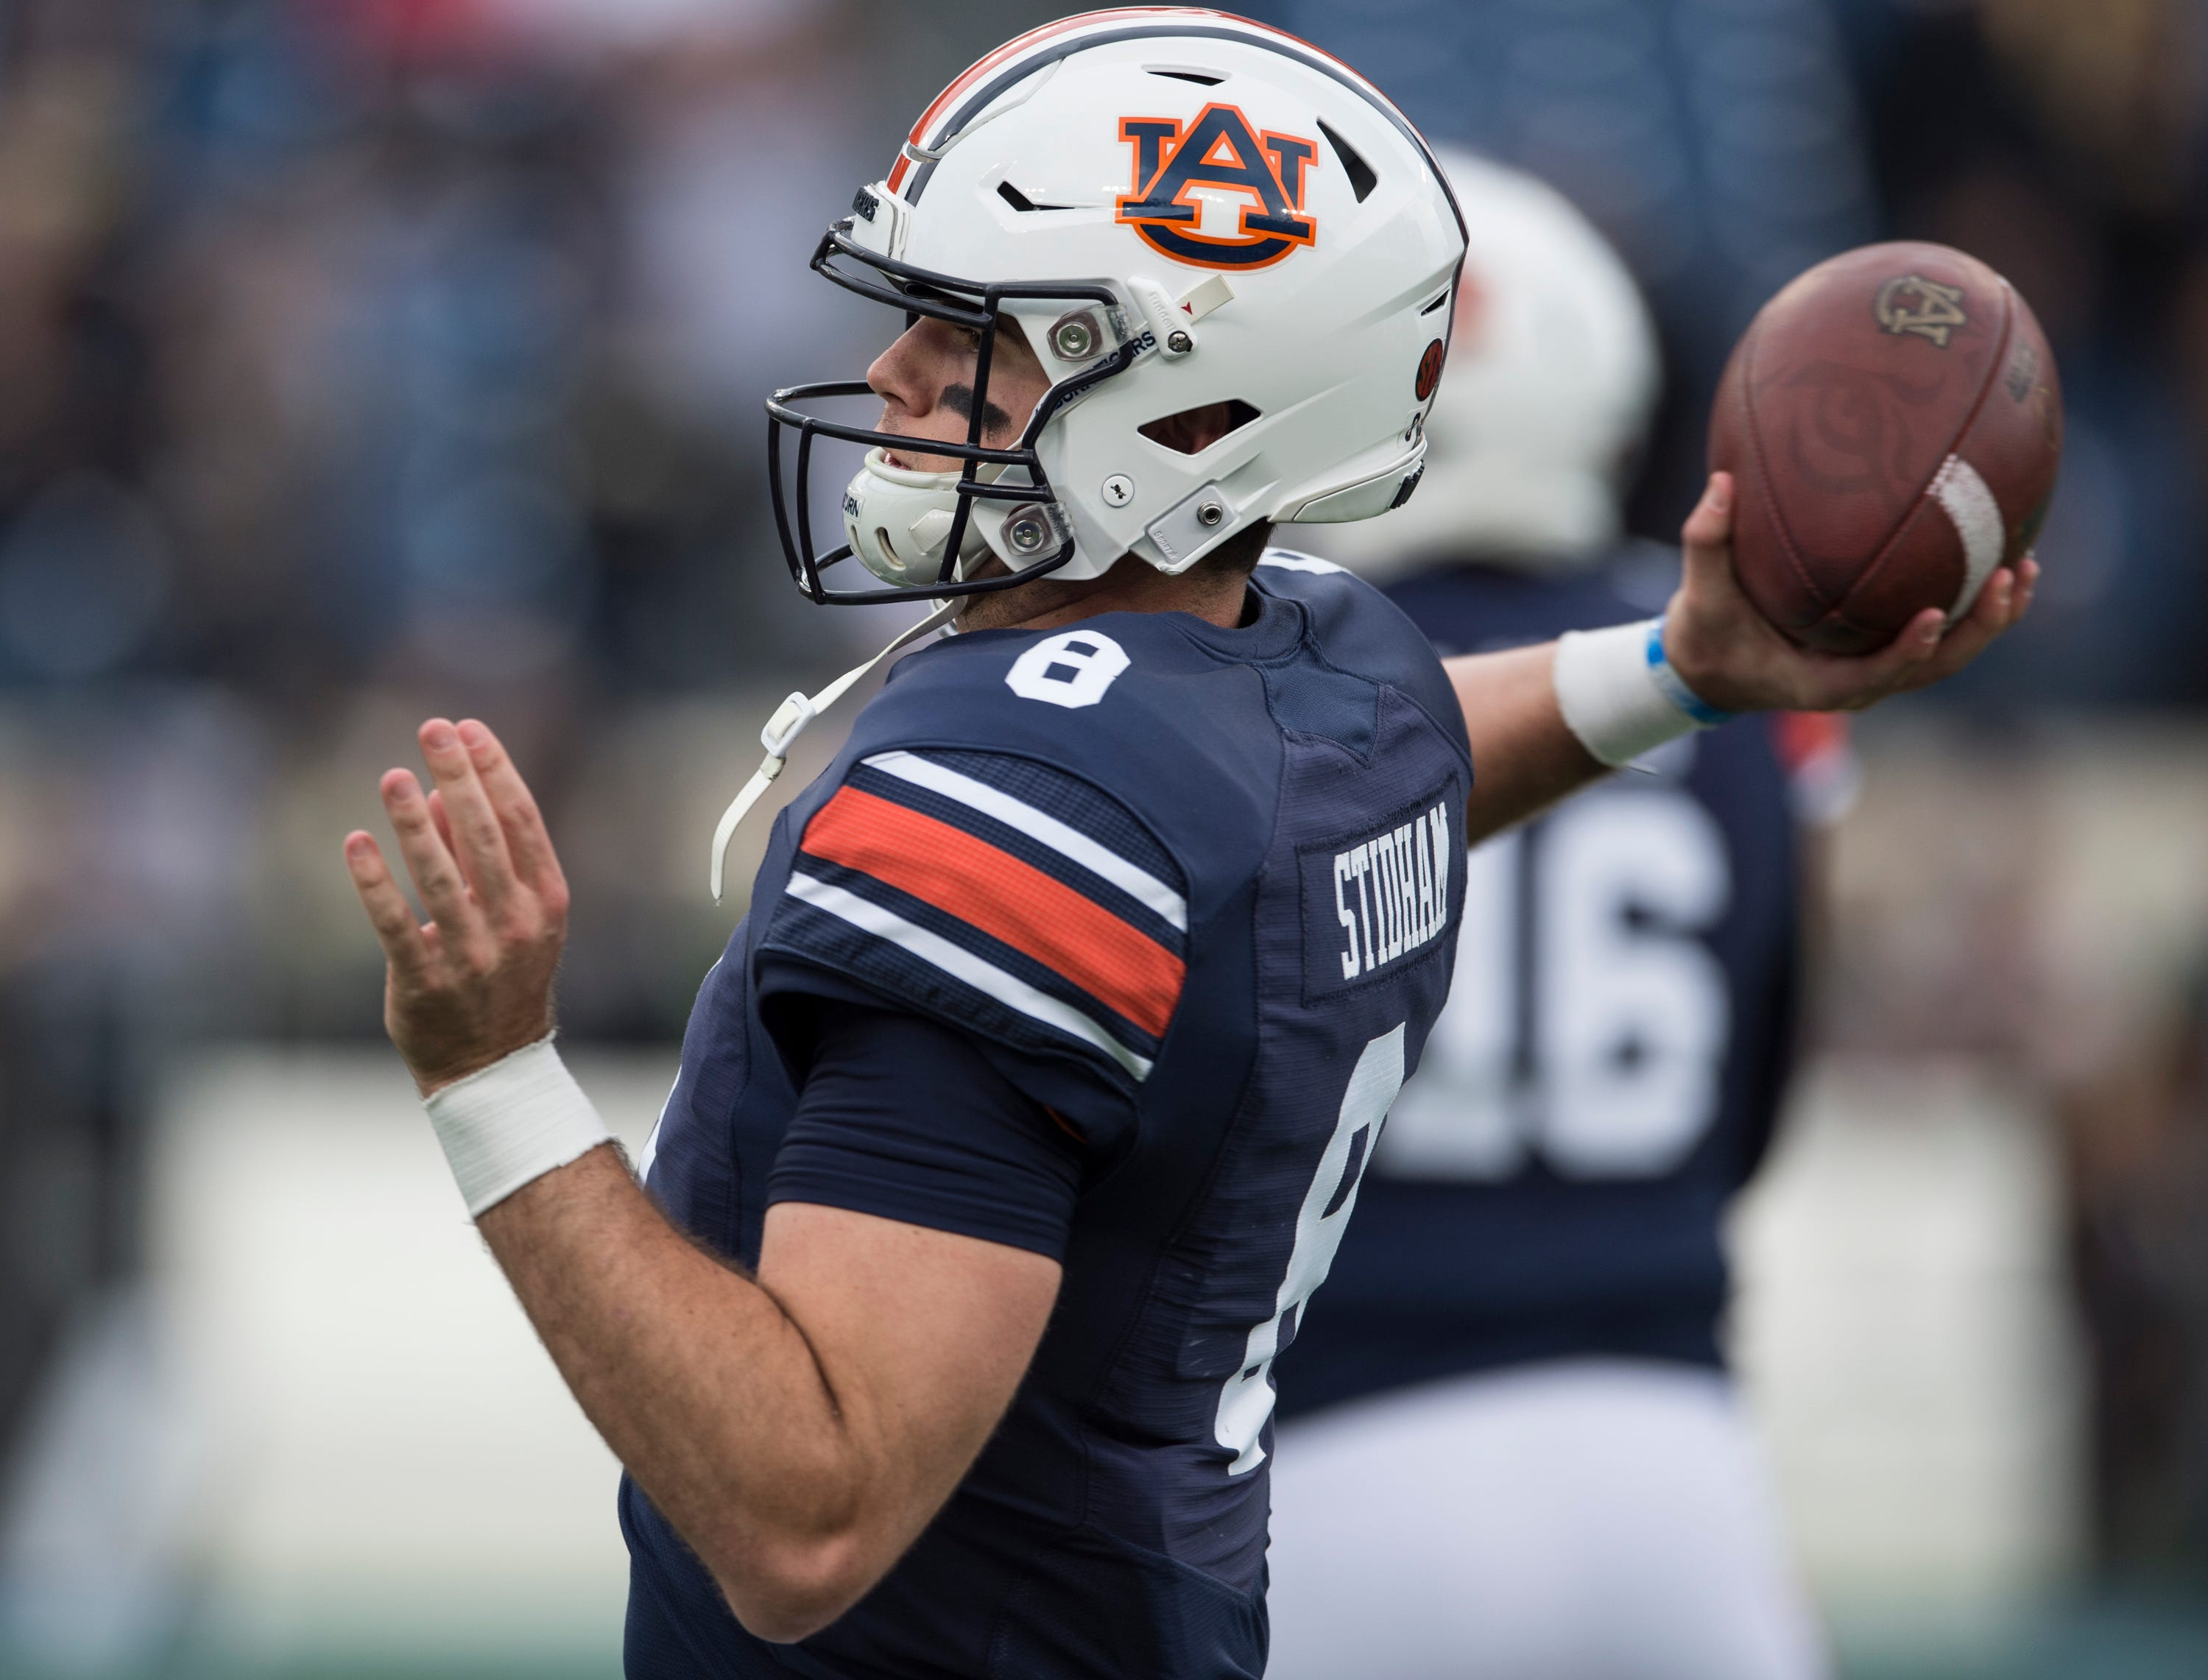 Auburn quarterback Jarrett Stidham (8) warms up before the Music City Bowl at Nissan Stadium in Nashville, Tenn., on Friday, Dec. 28, 2018.